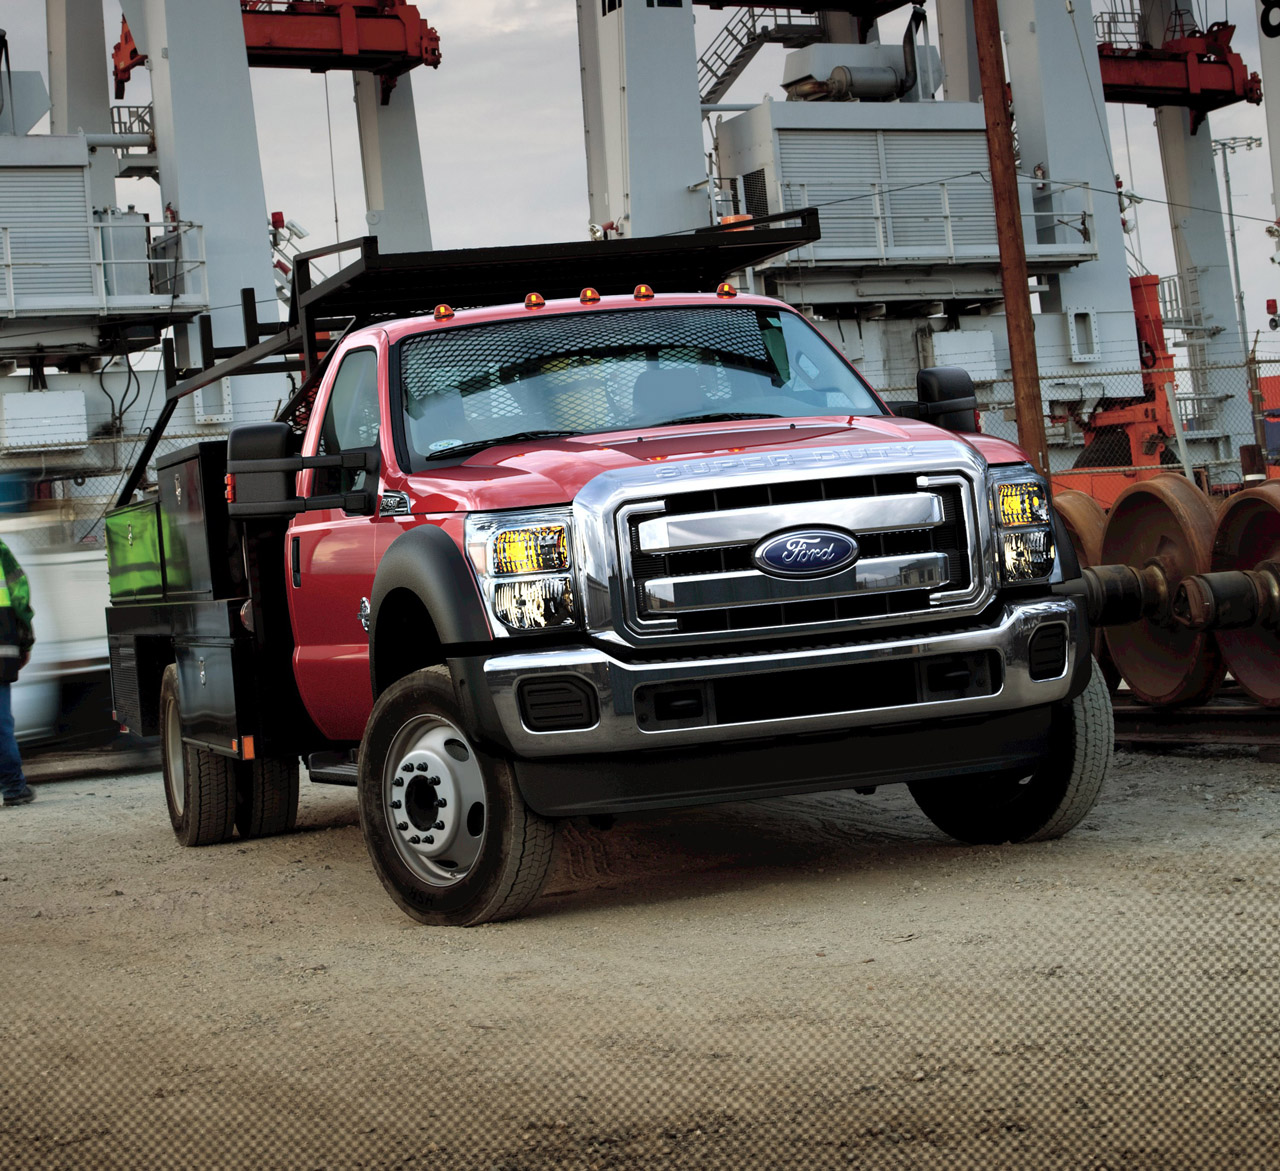 2011 Ford Super Duty Photo Gallery